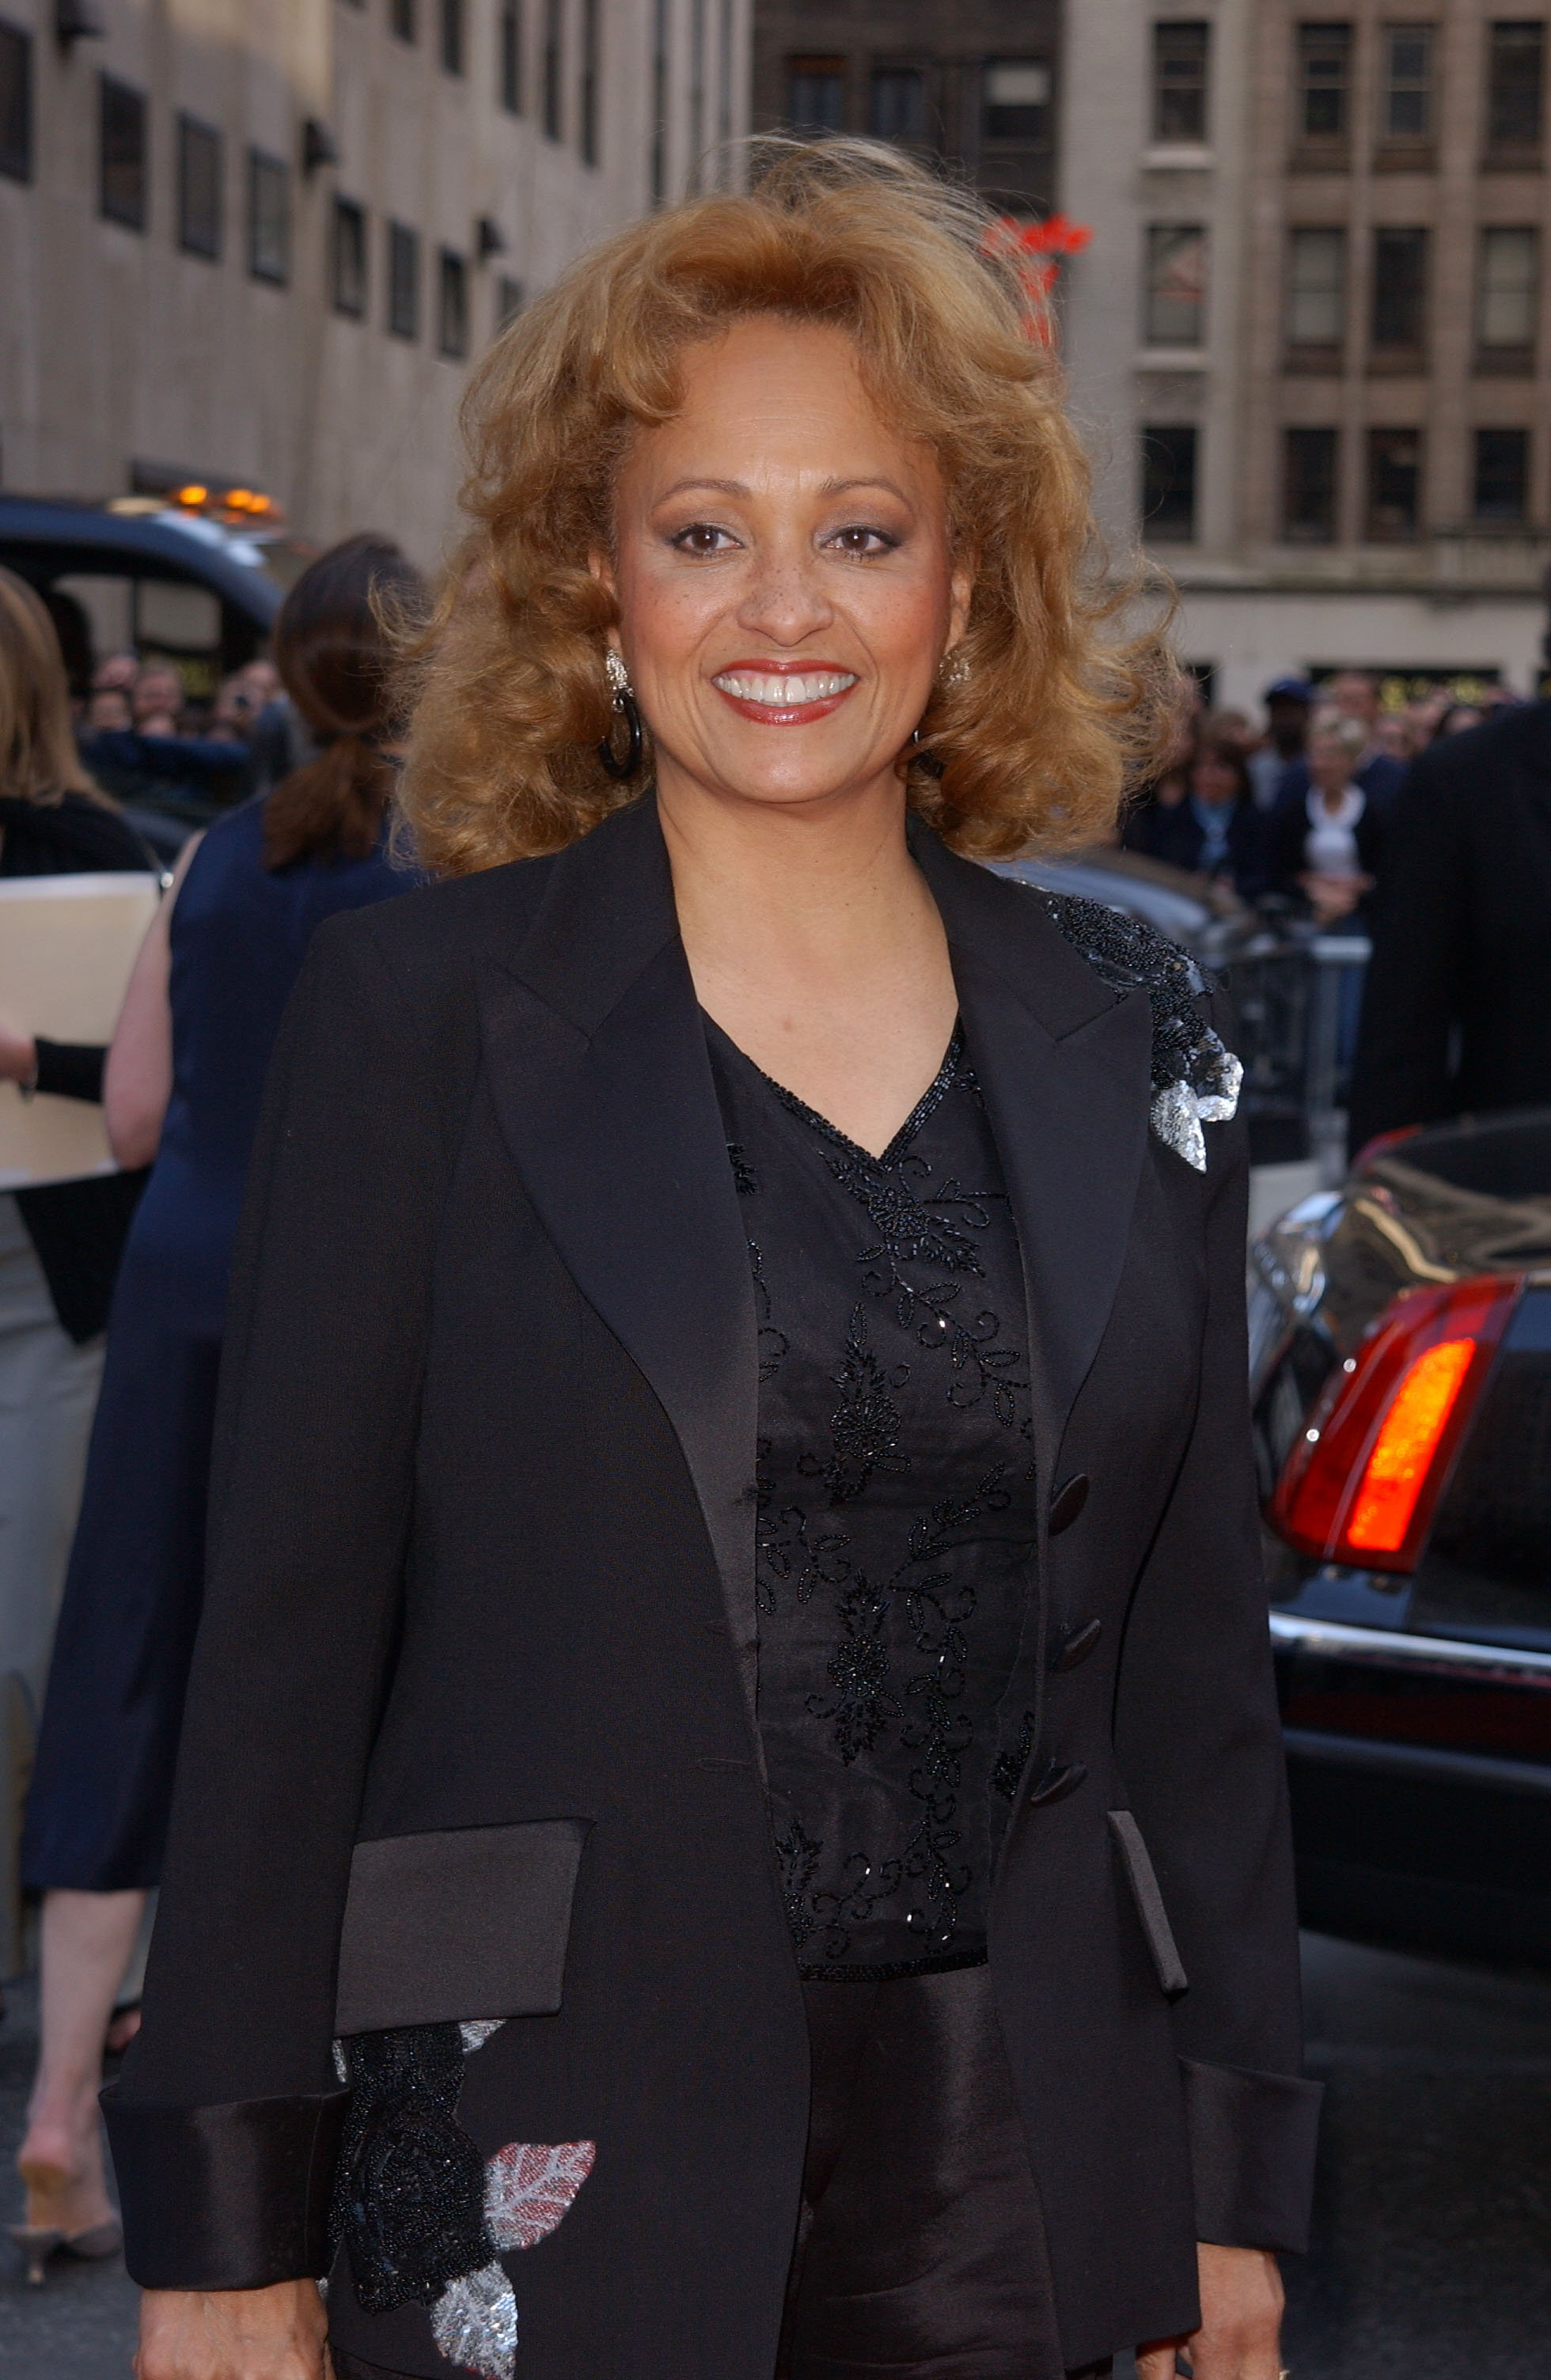 Daphne Maxwell Reid in New York City, on May 5, 2002 | Photo: Getty Images/Global Images Ukraine